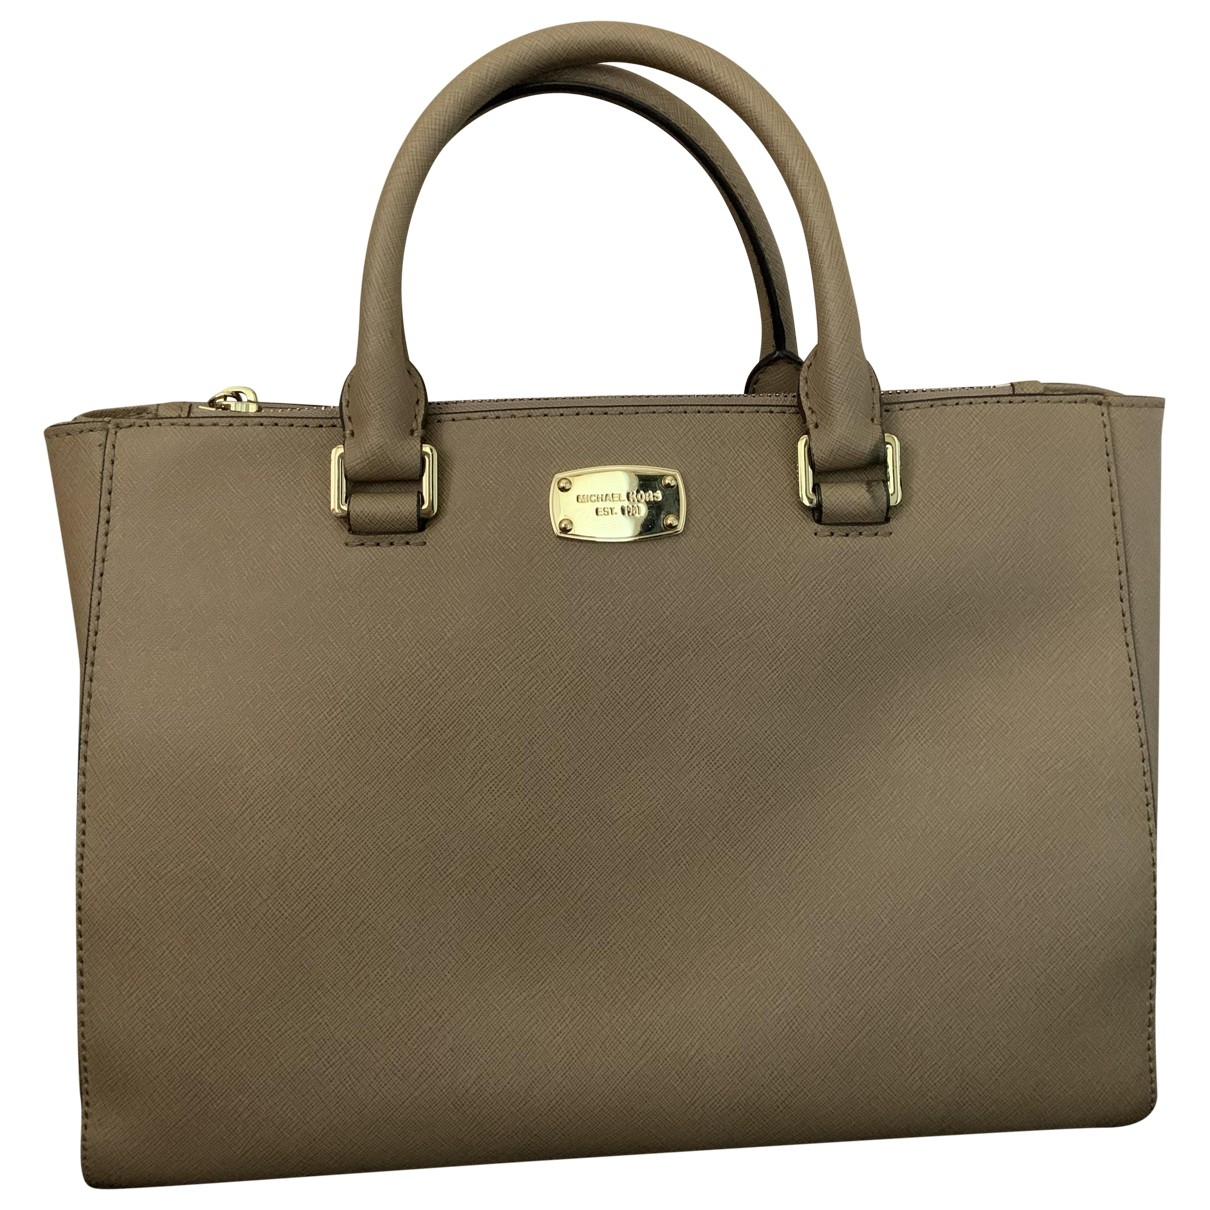 Michael Kors Savannah Beige Leather handbag for Women \N